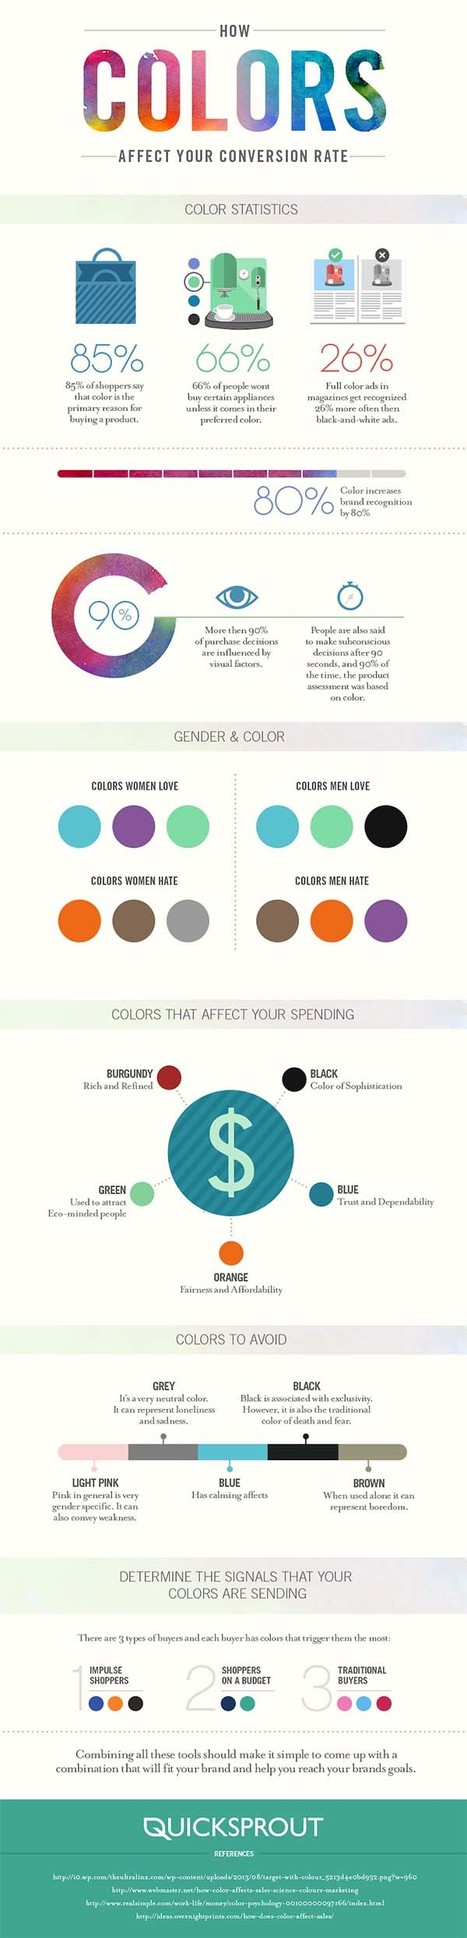 How Colour Affects the Conversion Rate of Your Website | infografias - infographics | Scoop.it